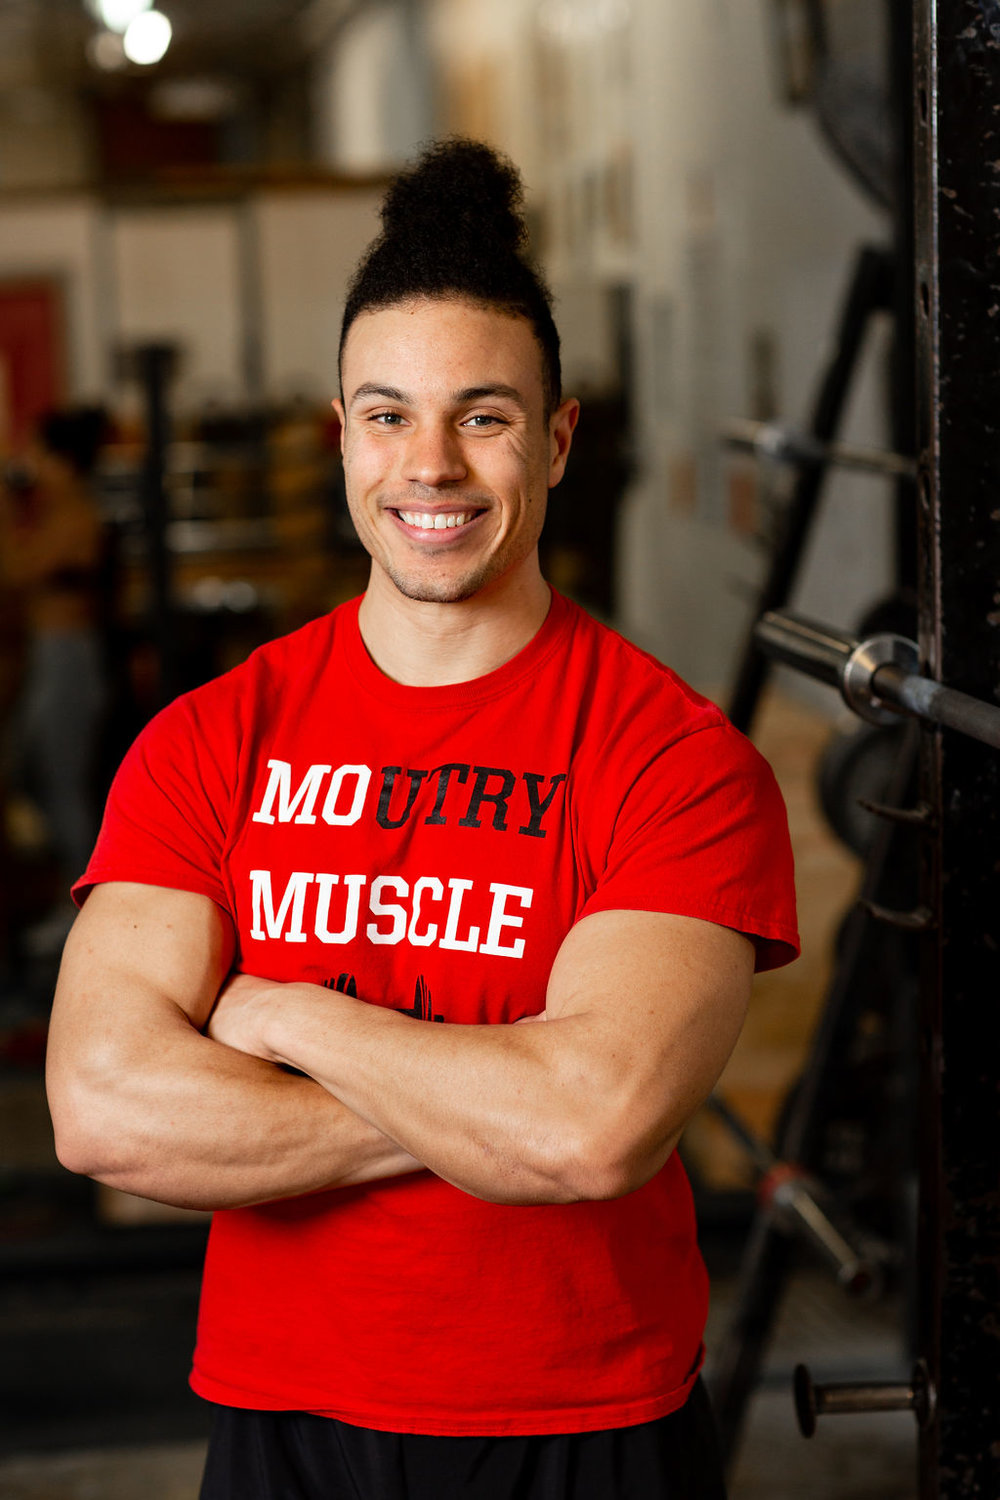 Josh Moutry - ACE CERTIFIED PERSONAL TRAINER AND CPR AED